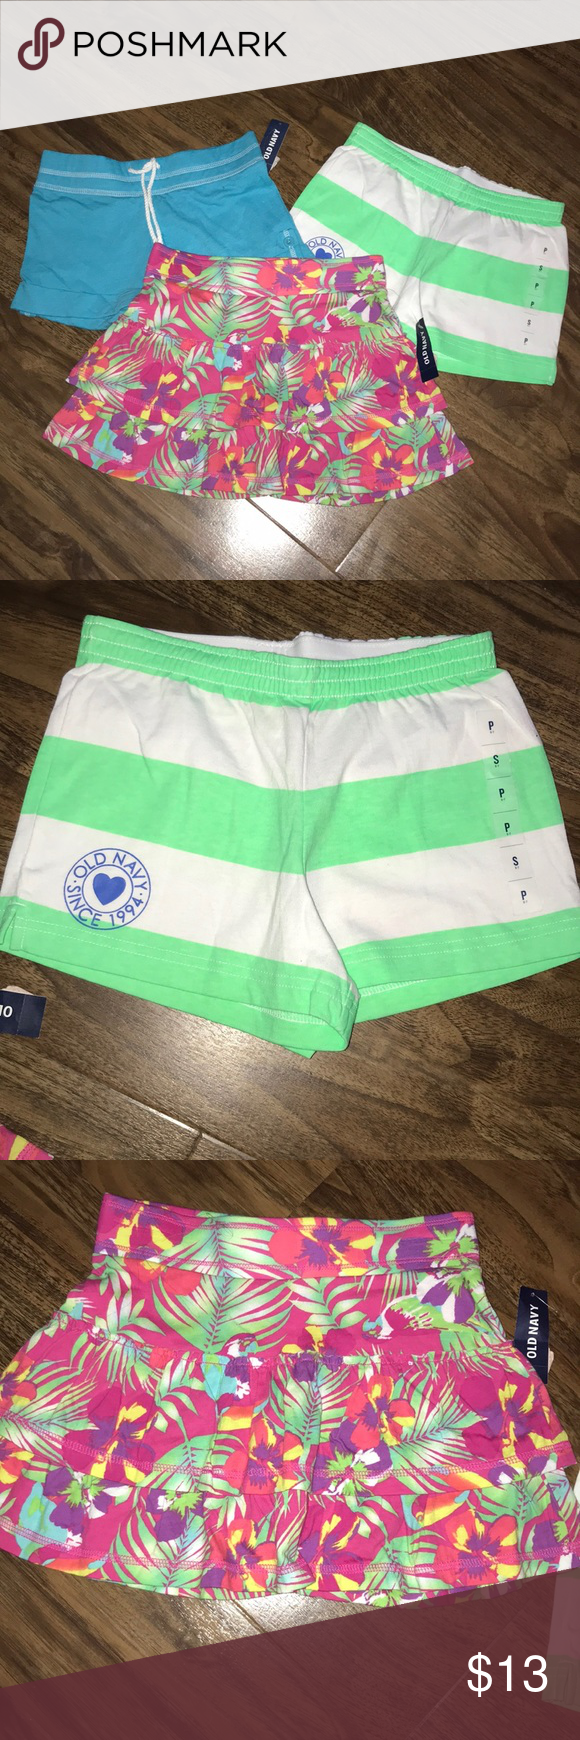 aeef0138192d5 NWT Lot/3 Shorts New with tags. Girls shorts. Lime green & white ...